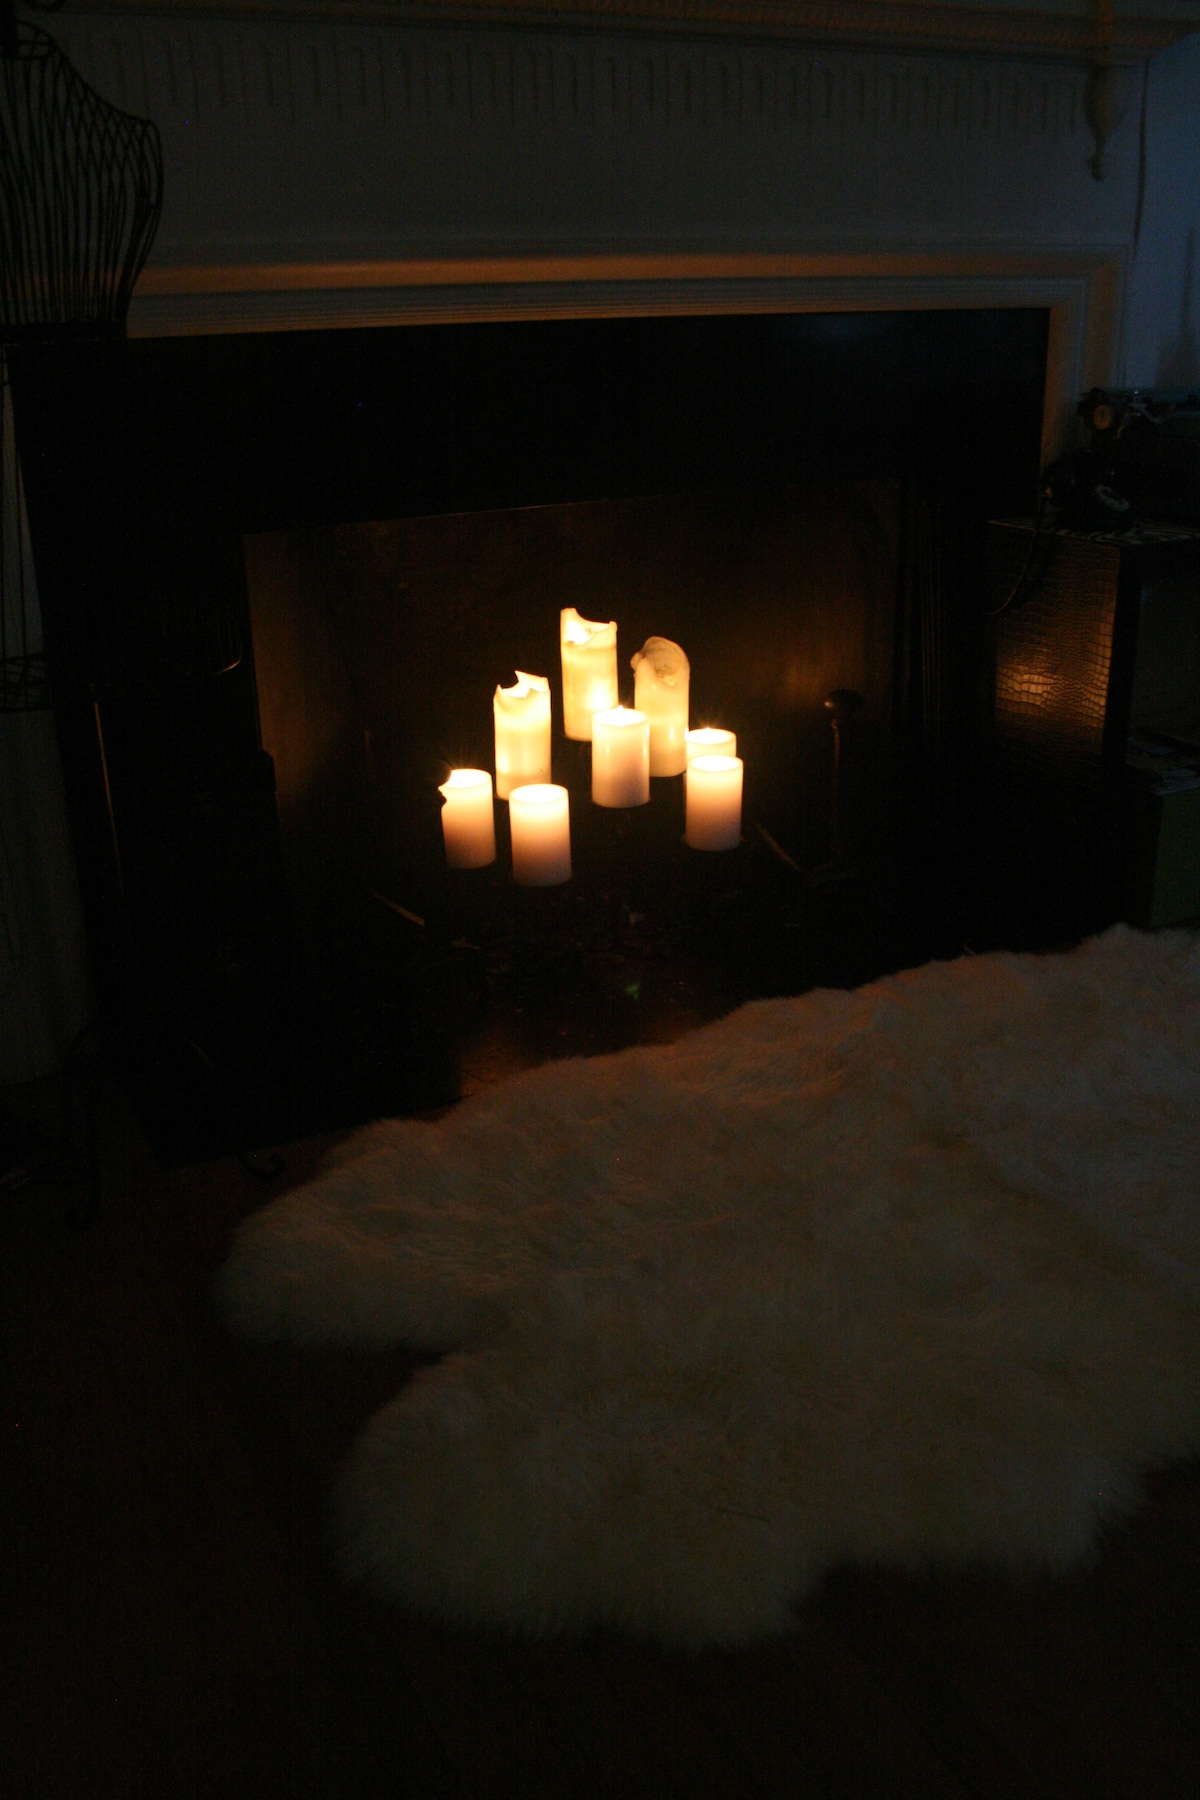 Real candles in the fireplace for cozy nights in.